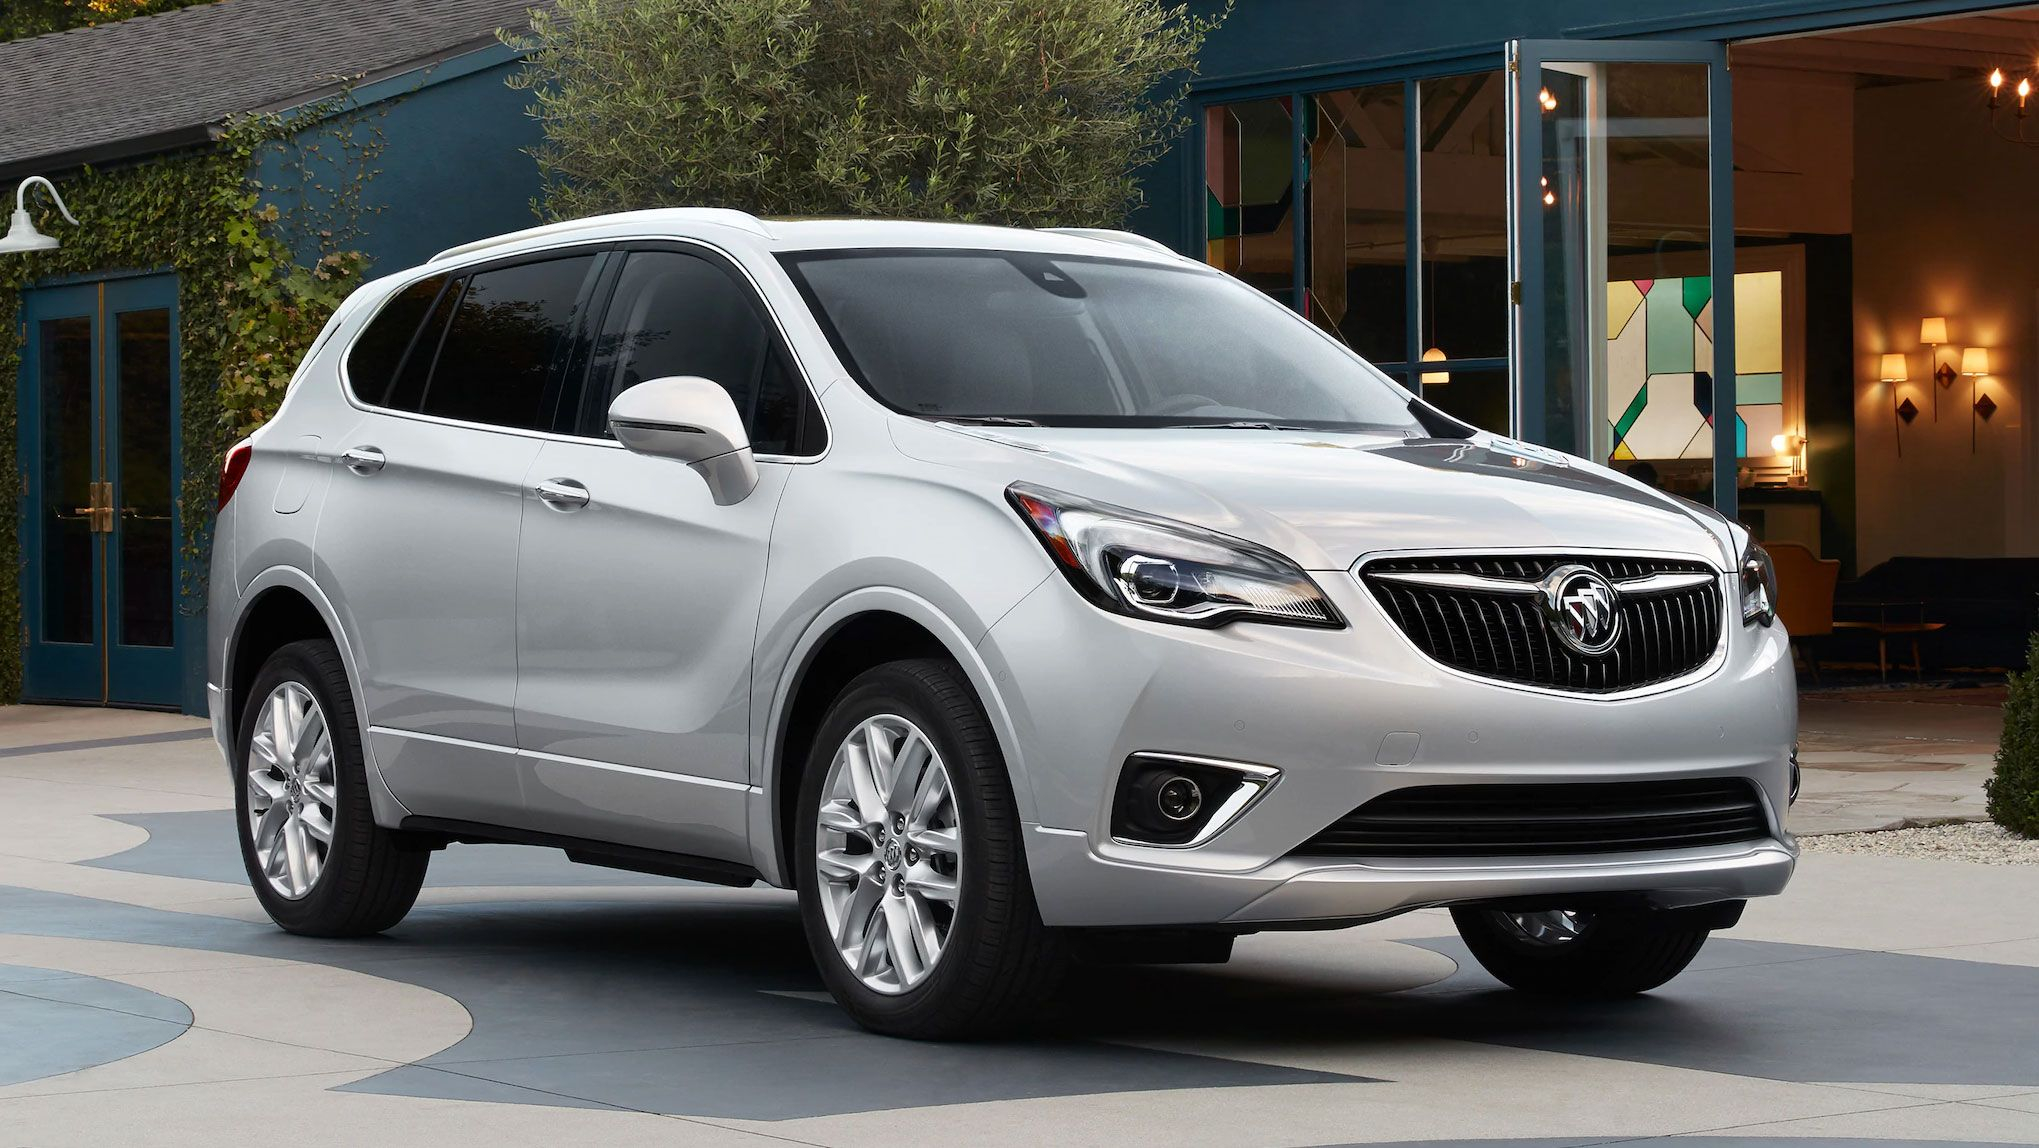 2020 Buick Envision Review, Pricing, And Specs Is The 2021 Buick Envision Flat Towable